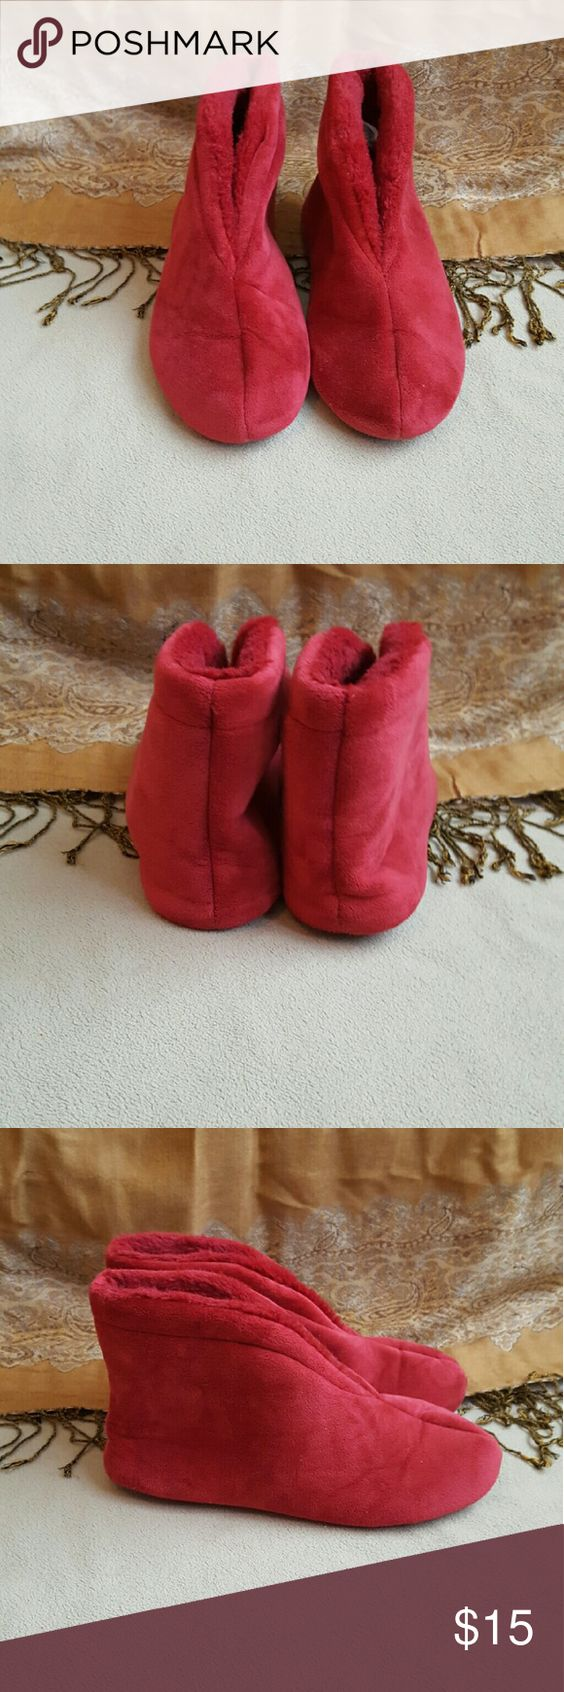 Slippers Soft comfy slippers. EUC Shoes Slippers